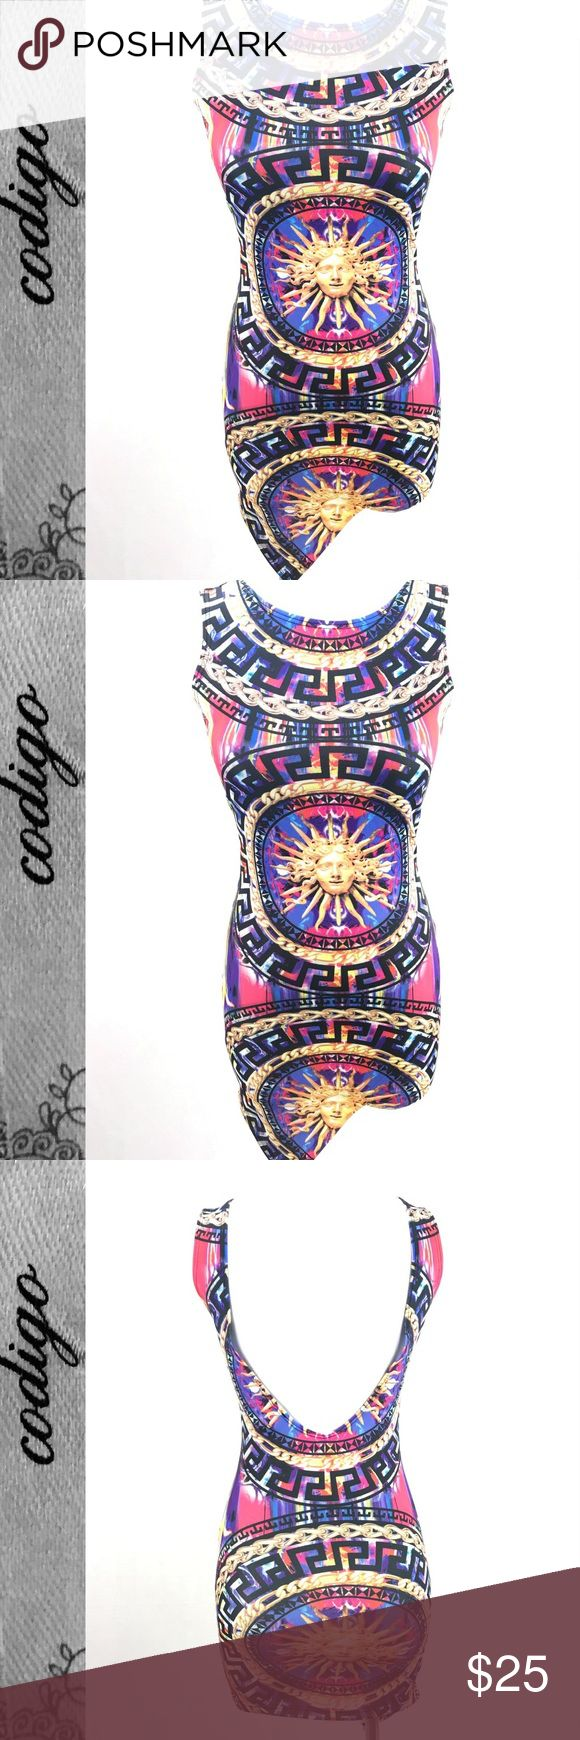 Codigo Greek Key Colorful Mini Dress Small Measurements:  Size: Small Shoulder to shoulder: 11.5 Collar: 8 Bust: 14.5 Waist: 12 Hips: 14 Top to bottom: 25-34 Bottom hem: 14 Material:  90% Polyester 10% Spandex Where it's Made: Made in the US Additional details:  Back is low cut This item is NWT 🌟  Please see all photos and use zoom feature, as they are used as part of item description. All measurements are approx and are in inches taken while laying flat. Check out the rest of my closet and…